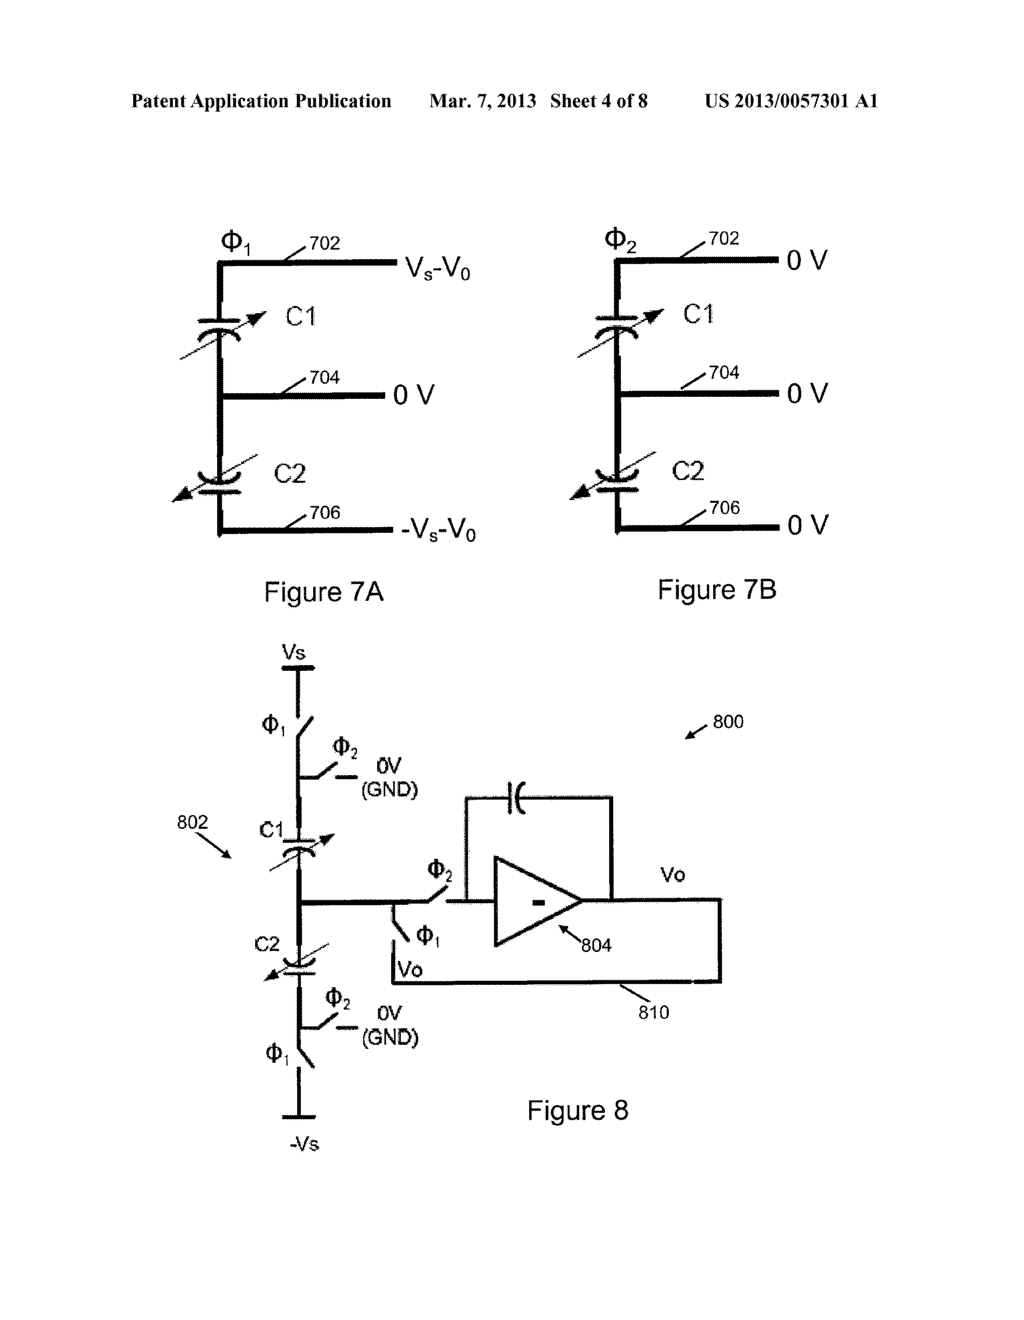 LINEAR CAPACITANCE-TO-VOLTAGE CONVERTER USING A SINGLE AMPLIFIER FOR     ACCELEROMETER FRONT ENDS WITH CANCELLATION OF SPURIOUS FORCES CONTRIBUTED     BY SENSOR CIRCUITRY - diagram, schematic, and image 05